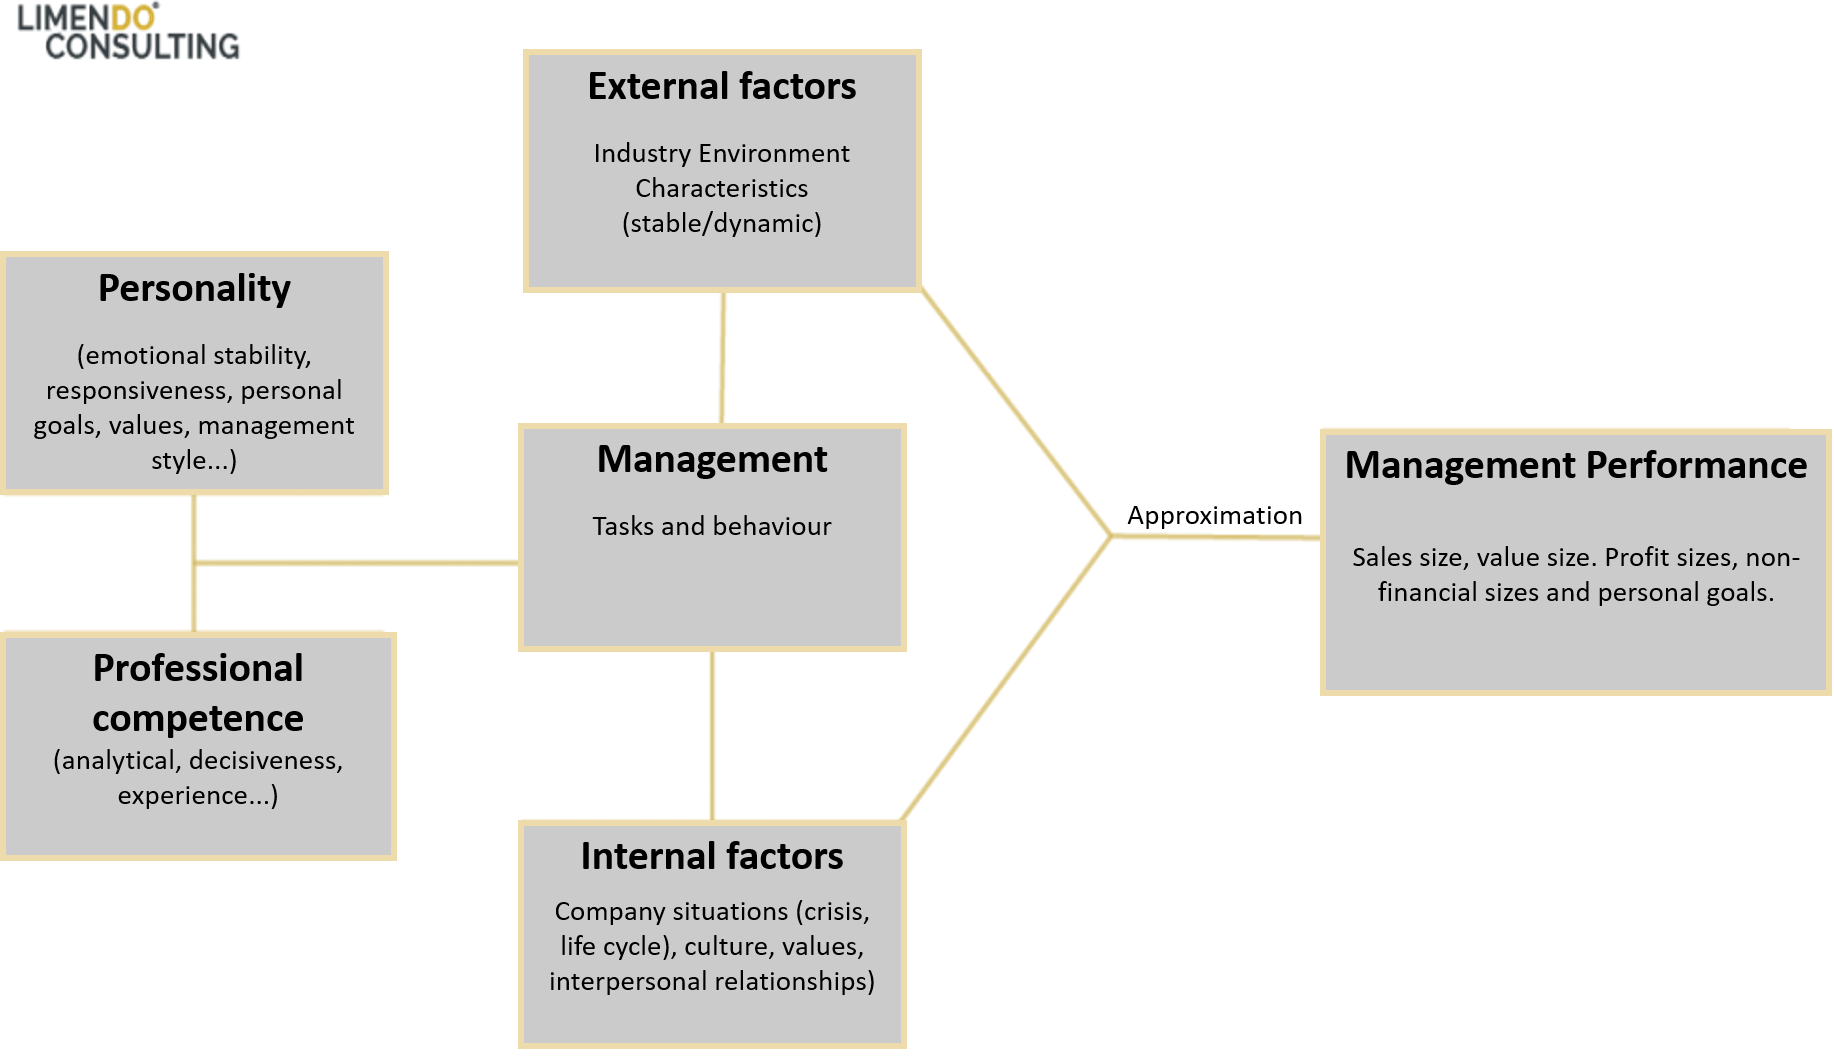 Factors Influencing Management Performance